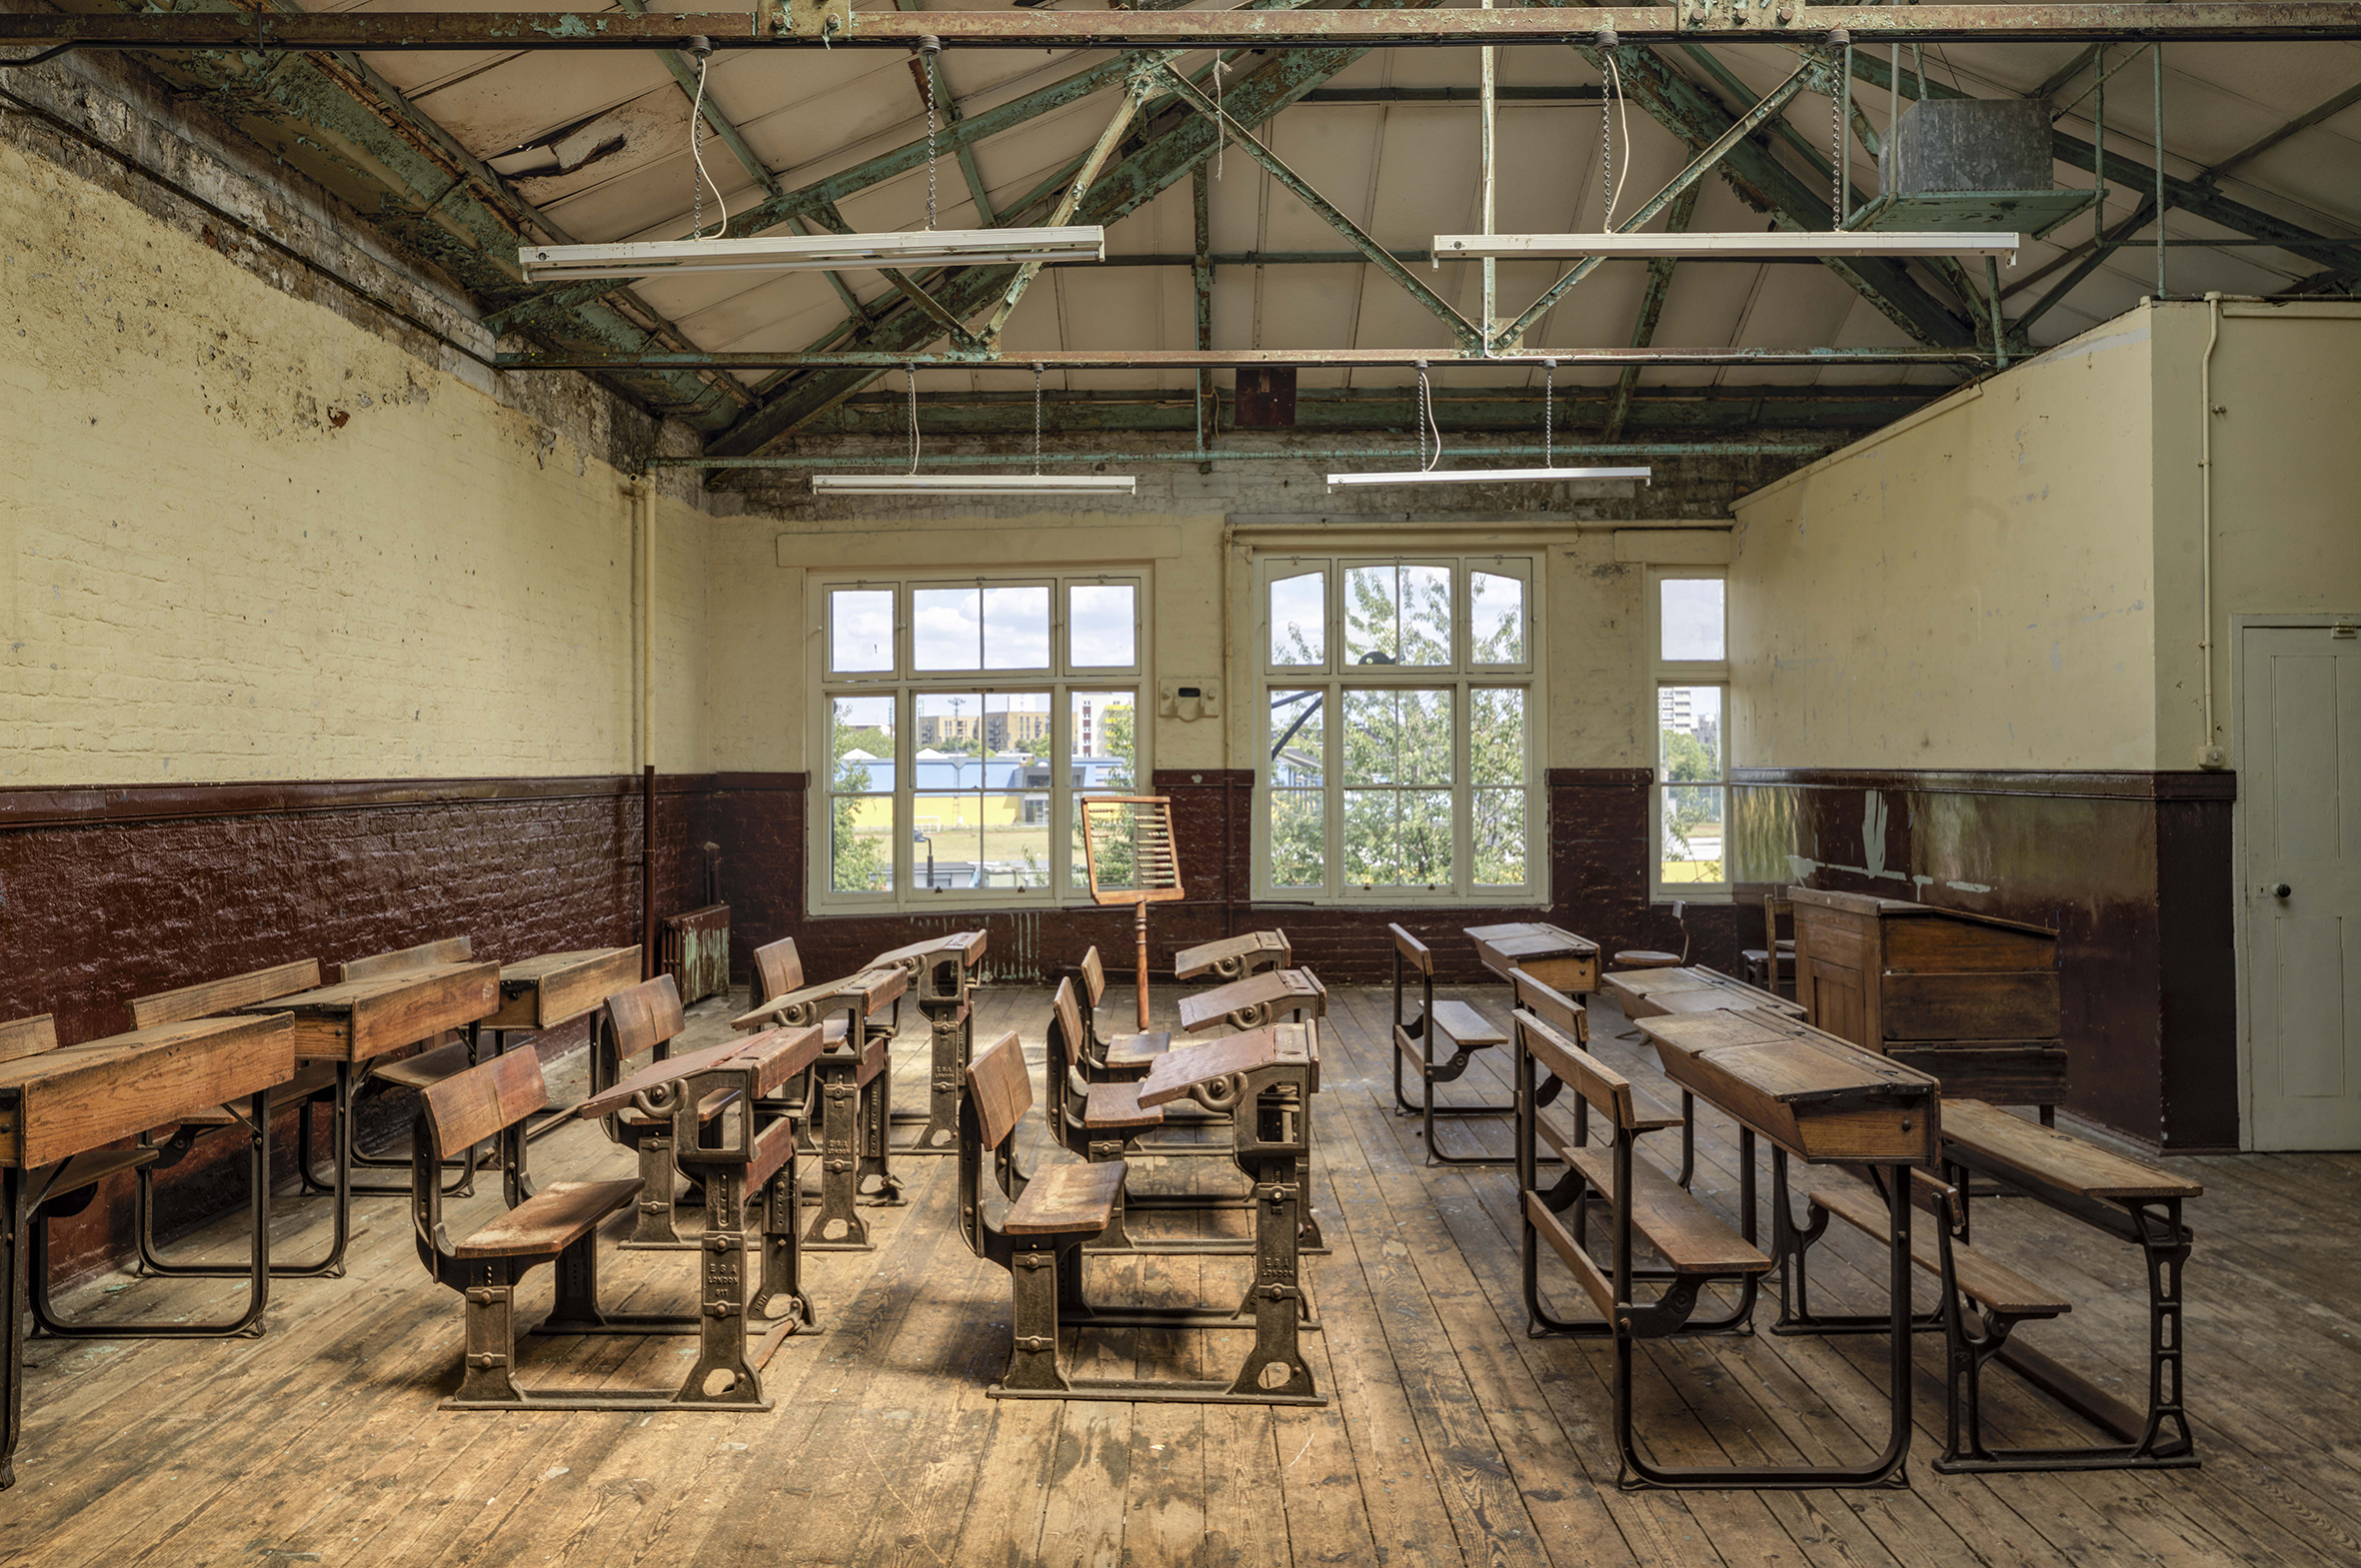 The Ragged School Museum in Tower Hamlets has been added to the 2020 Heritage At Risk Register